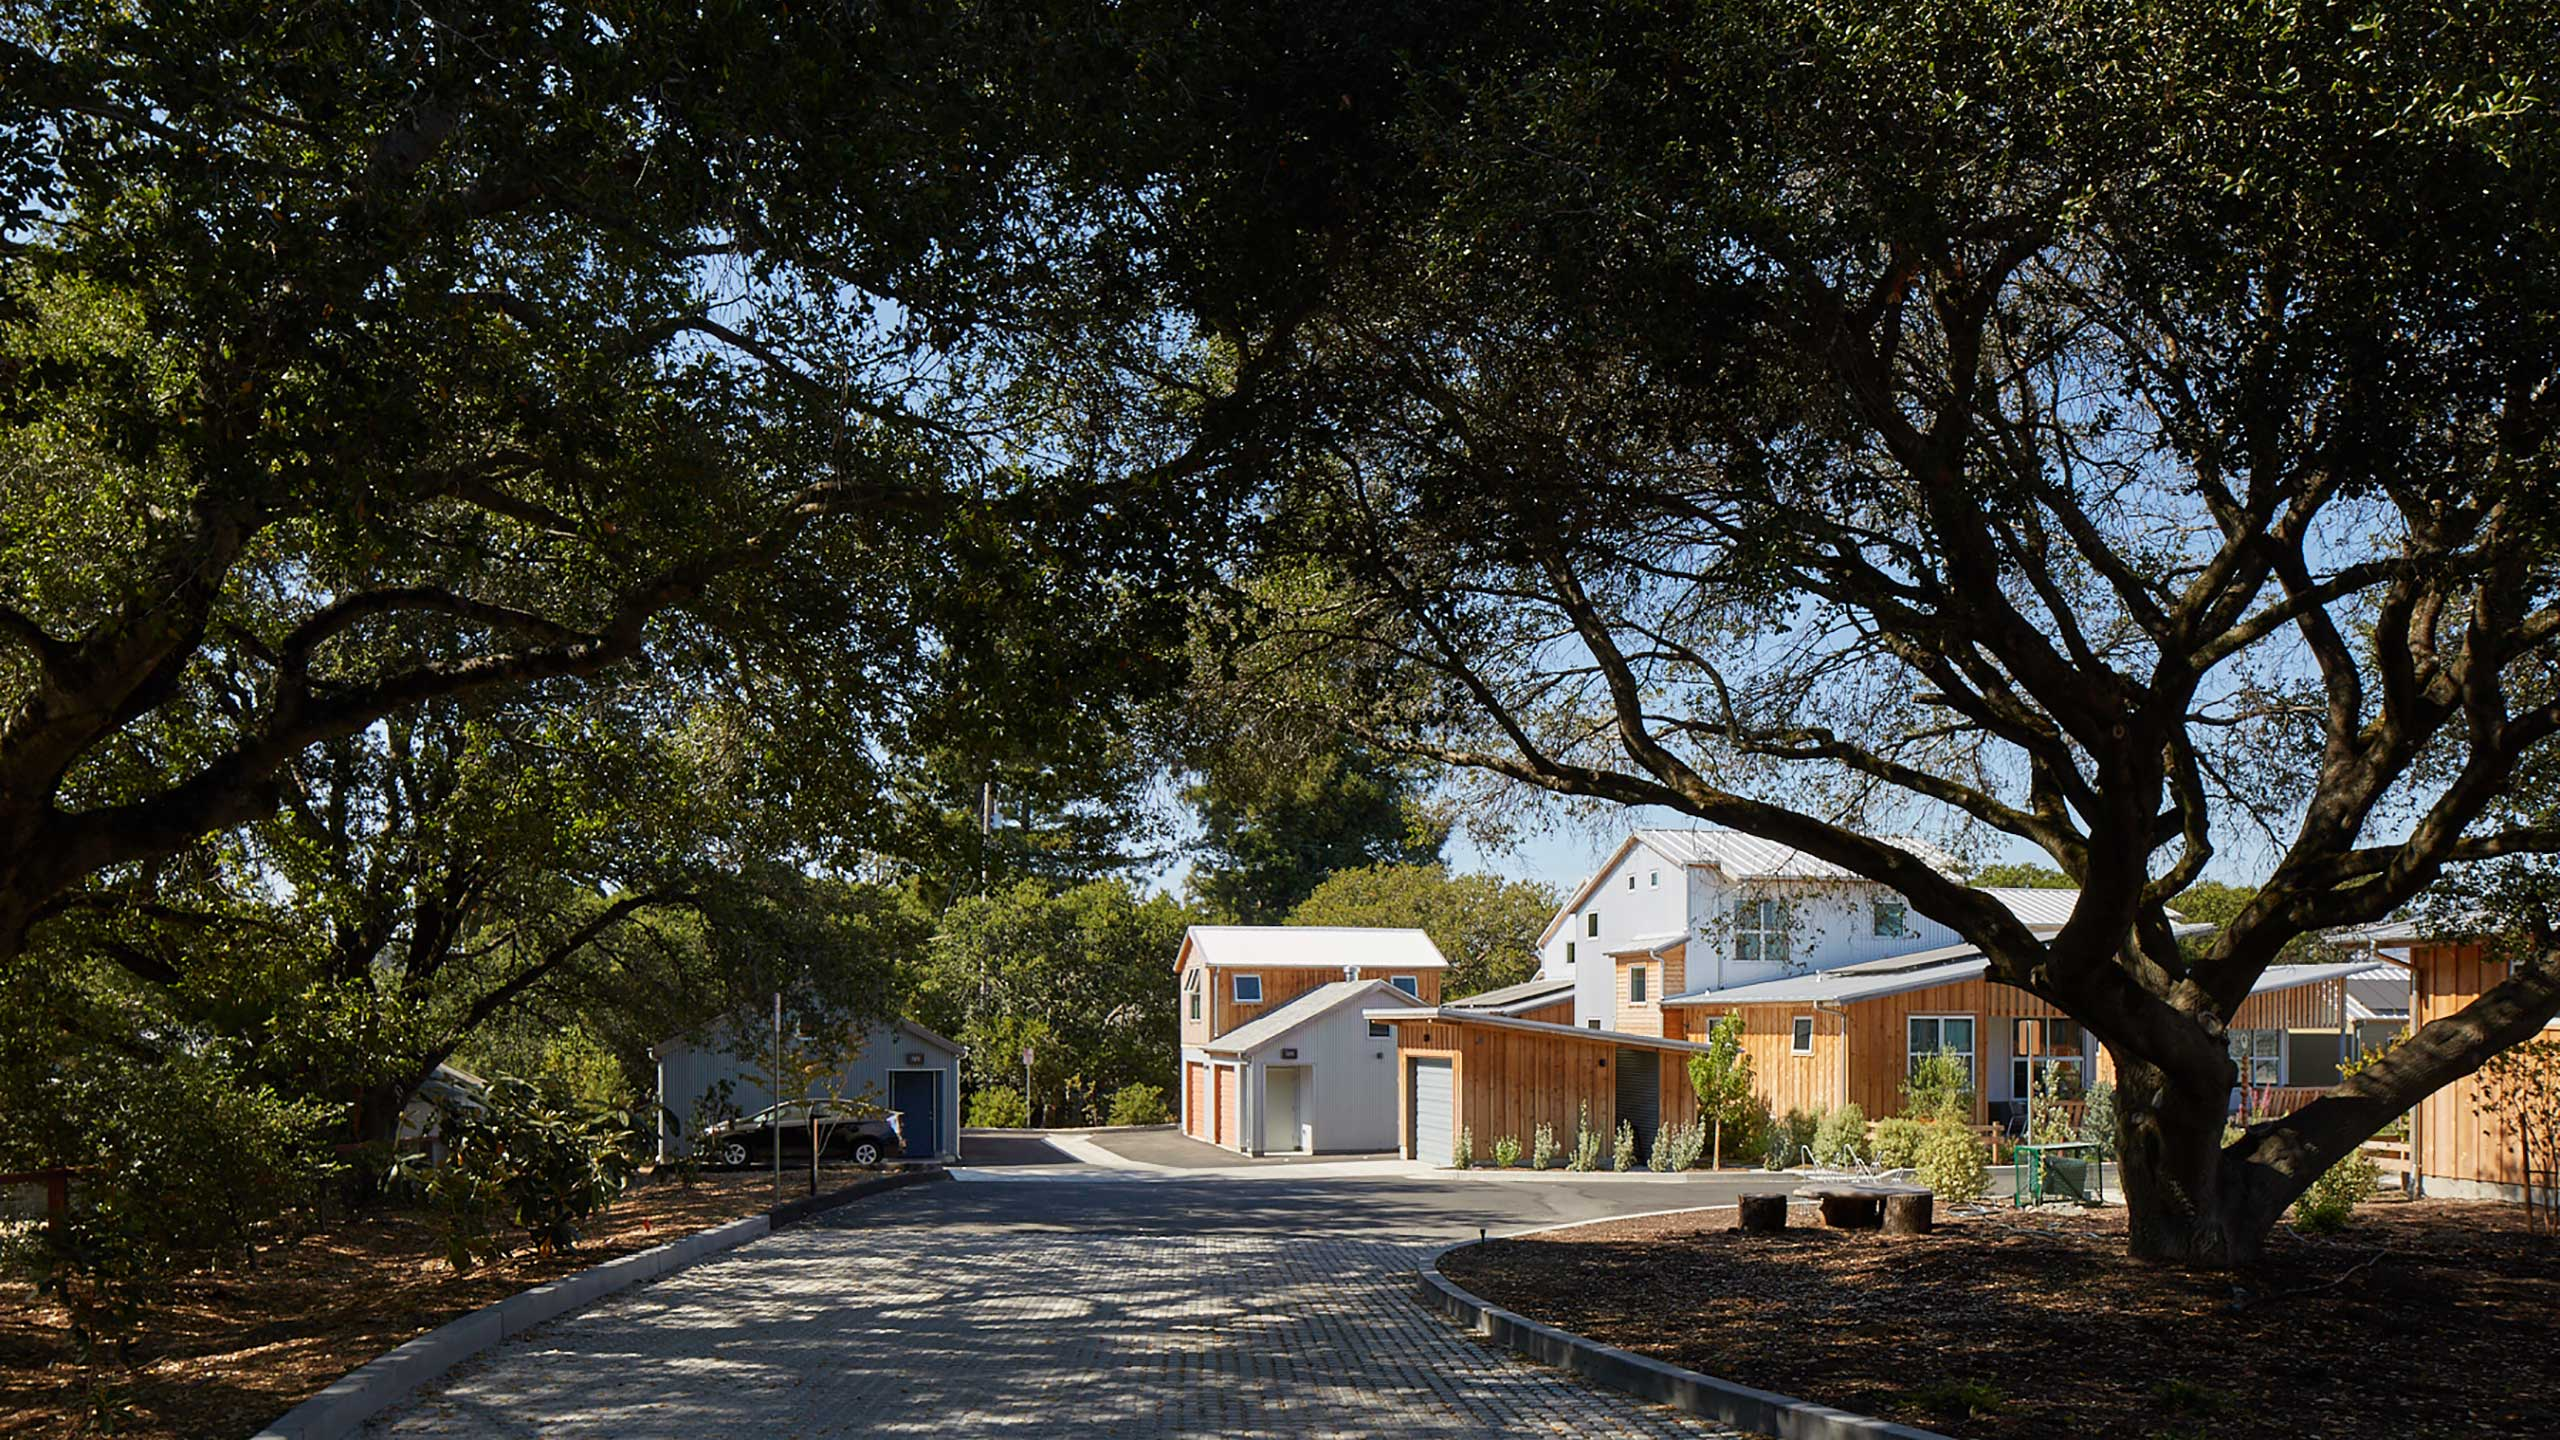 Sustainable-Architecture-Sonoma-County-Keller-Court-parking